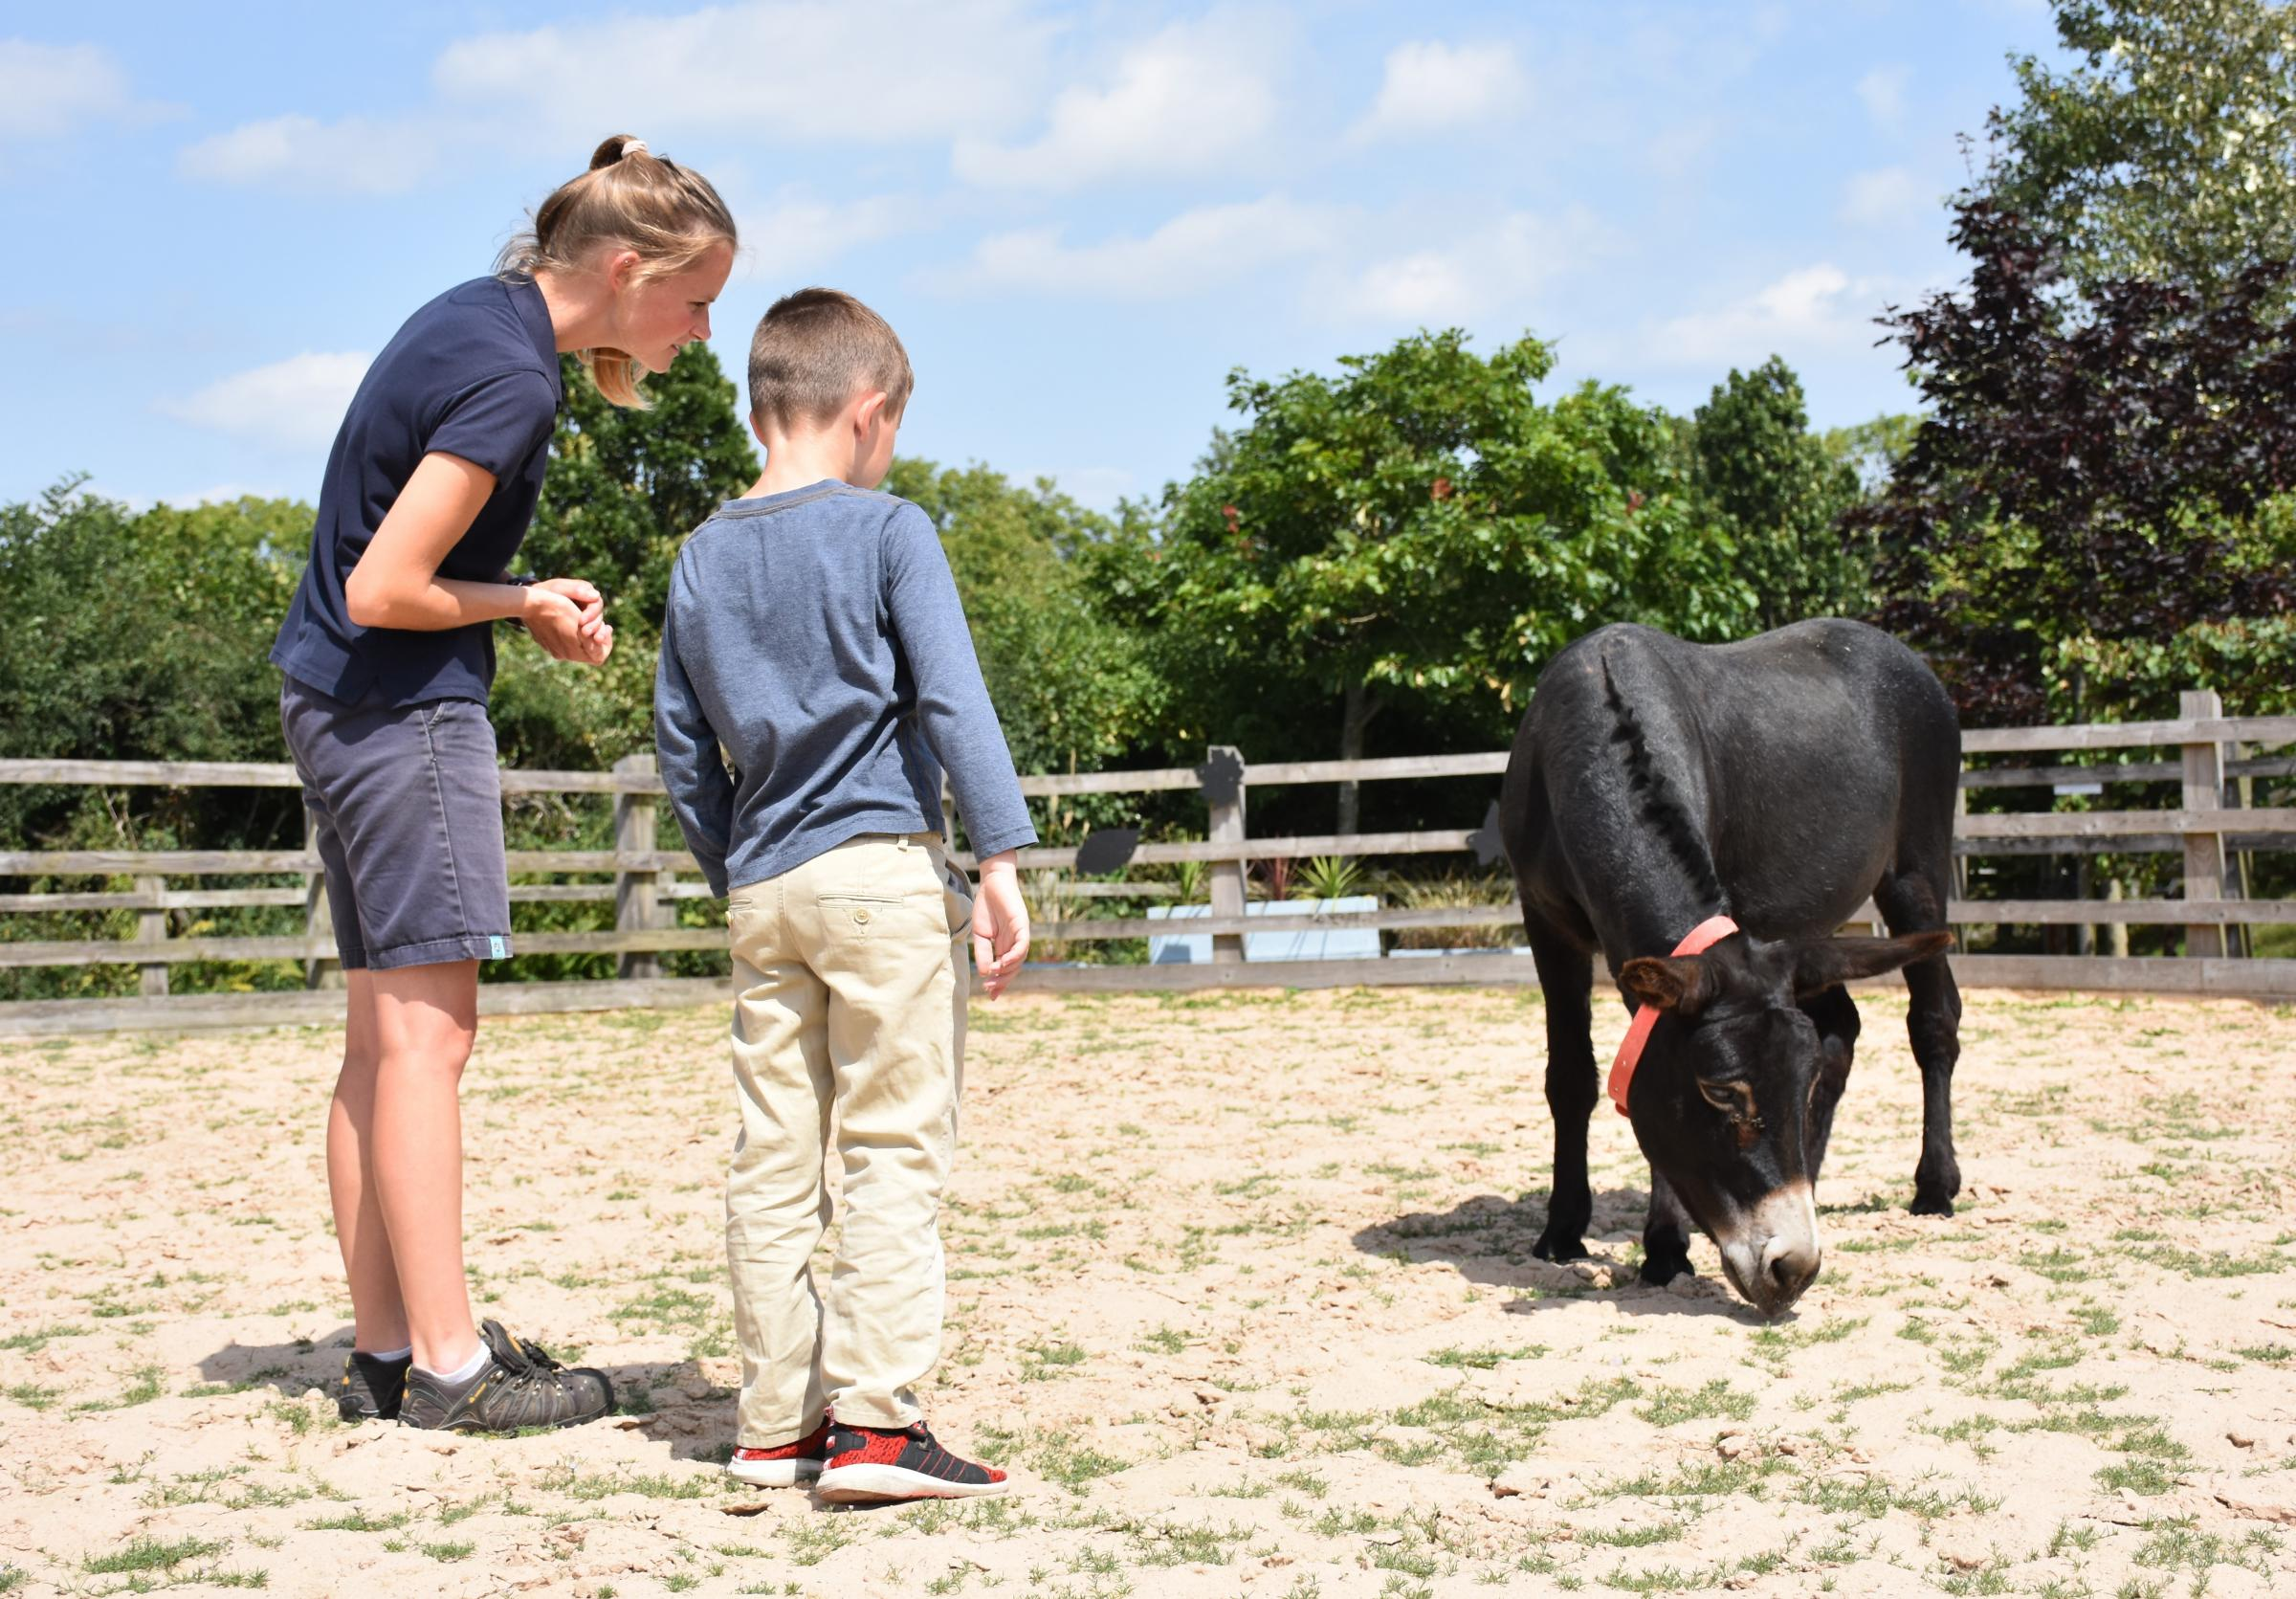 SUPPORT: Clients of Pete's Dragons visit The Donkey Sanctuary